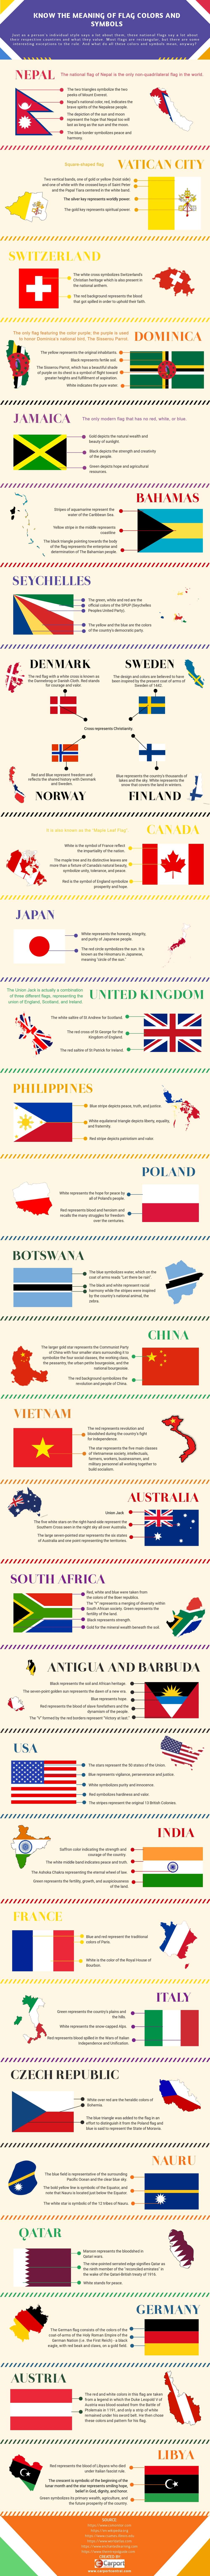 The Meaning Behind Symbols: National Flag Colors and Symbols - Infographic